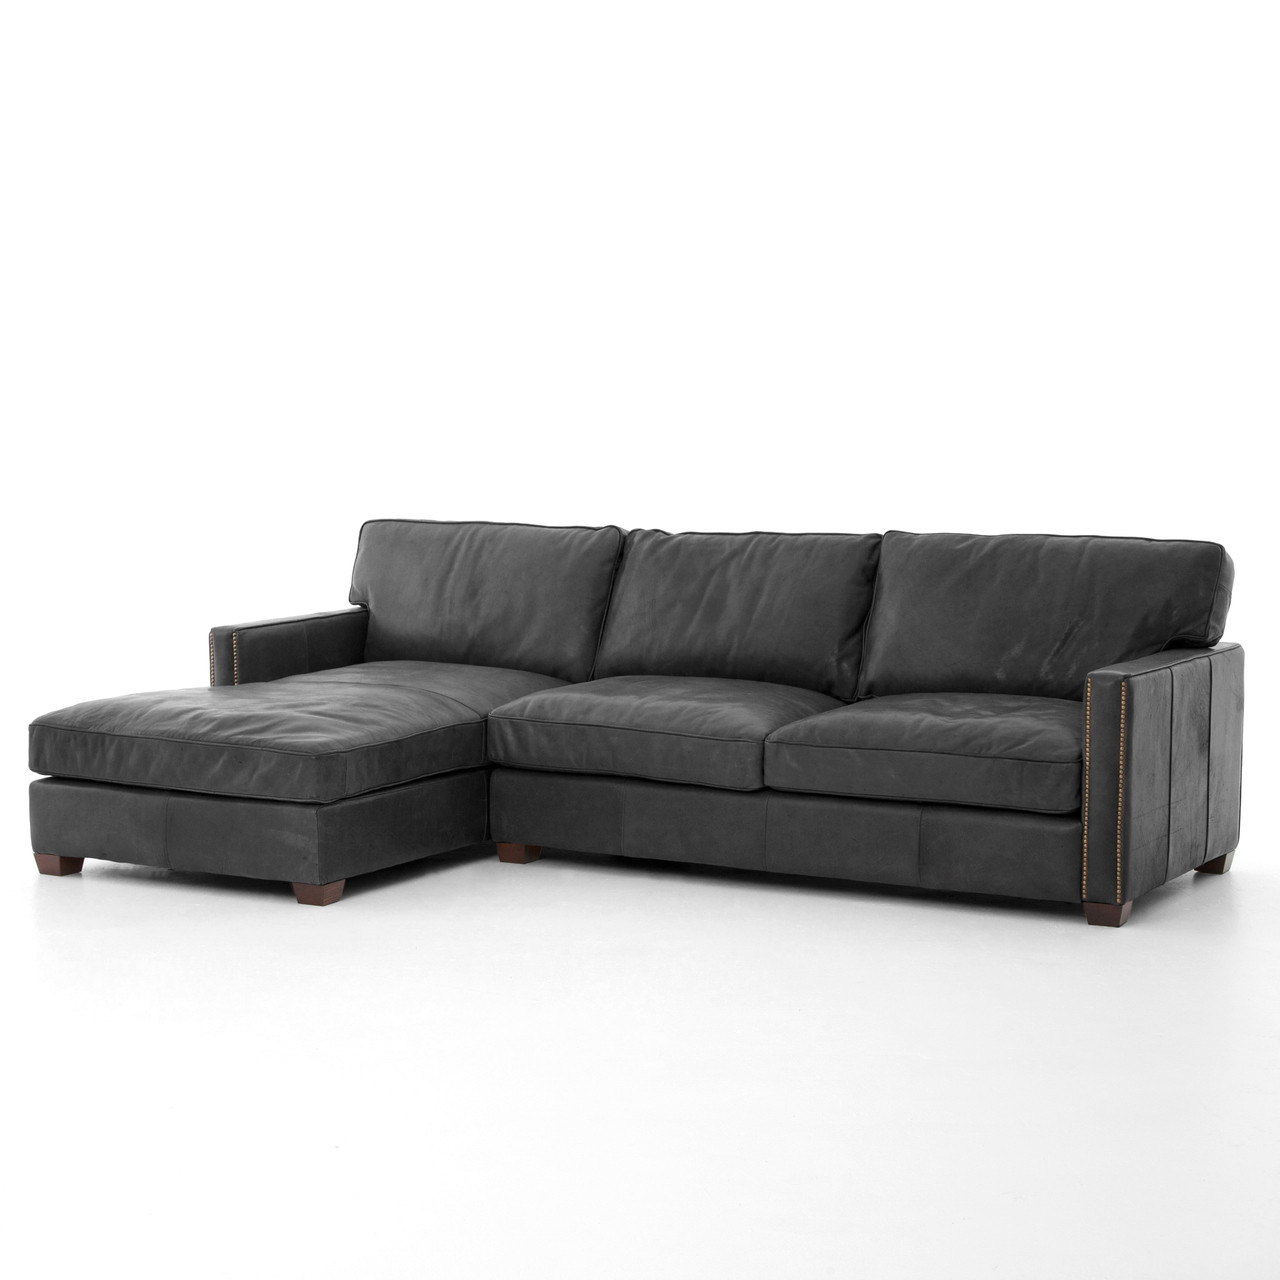 Lovely Larkin Vintage Black Distressed Leather Sectional Sofa With Chaise